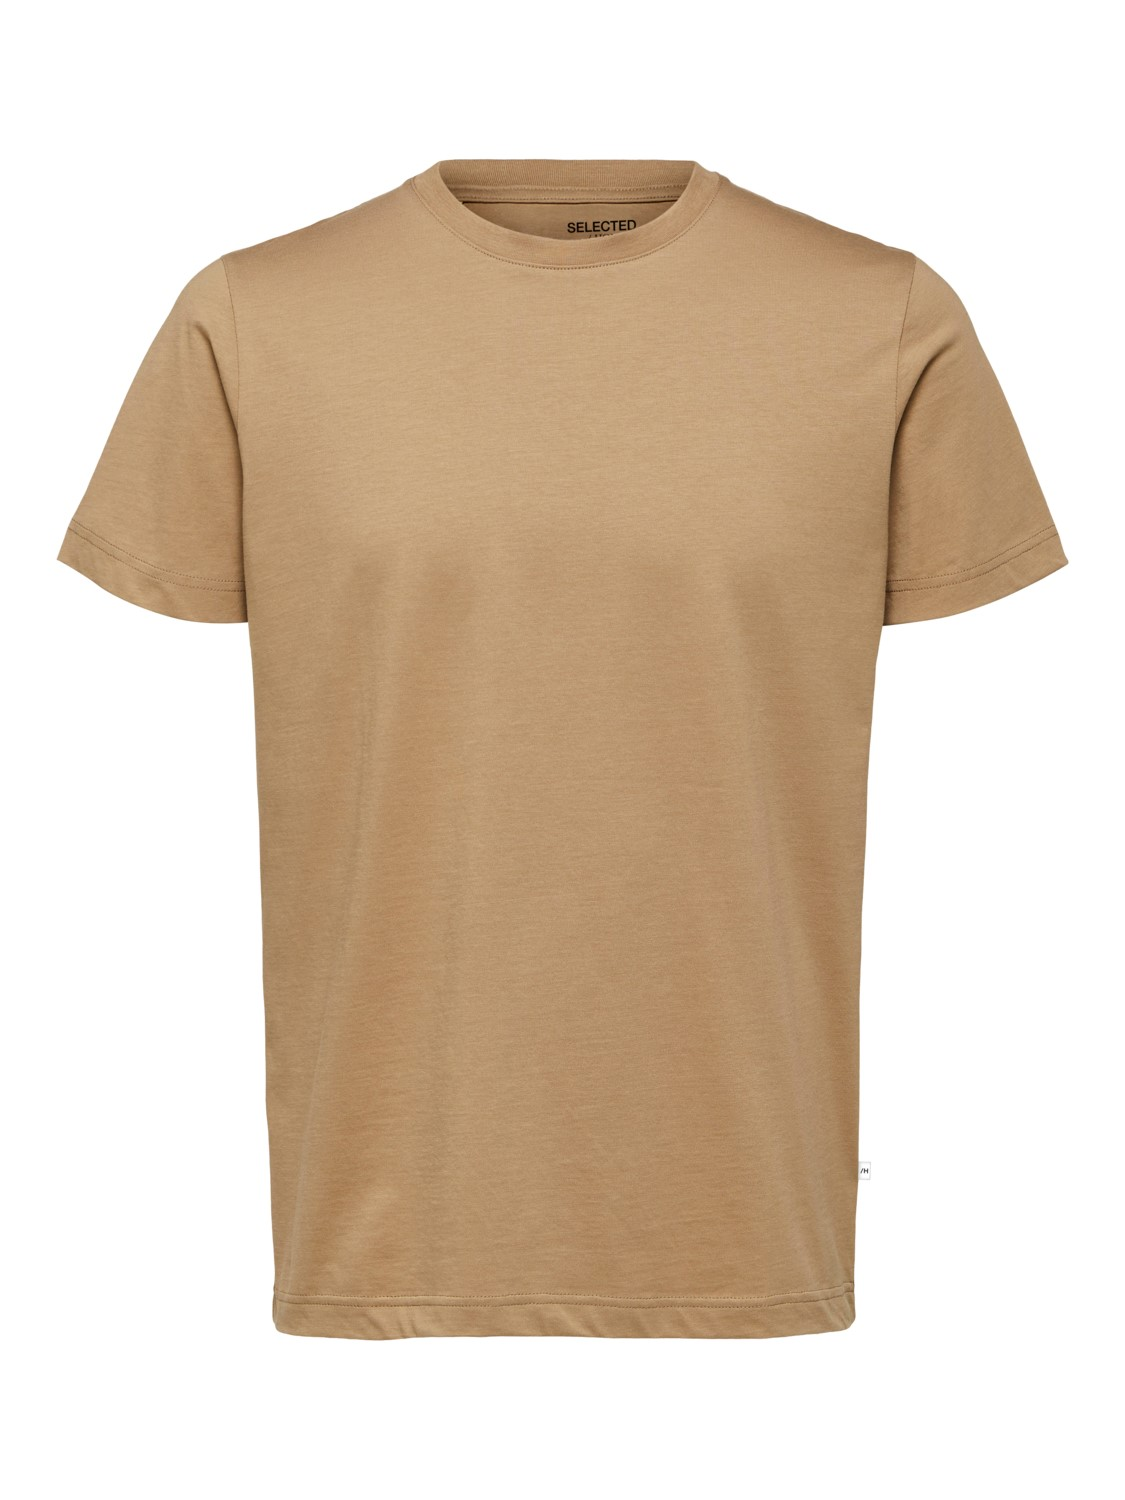 Selected - T-shirt o-neck kelp | Gate36 Hobro